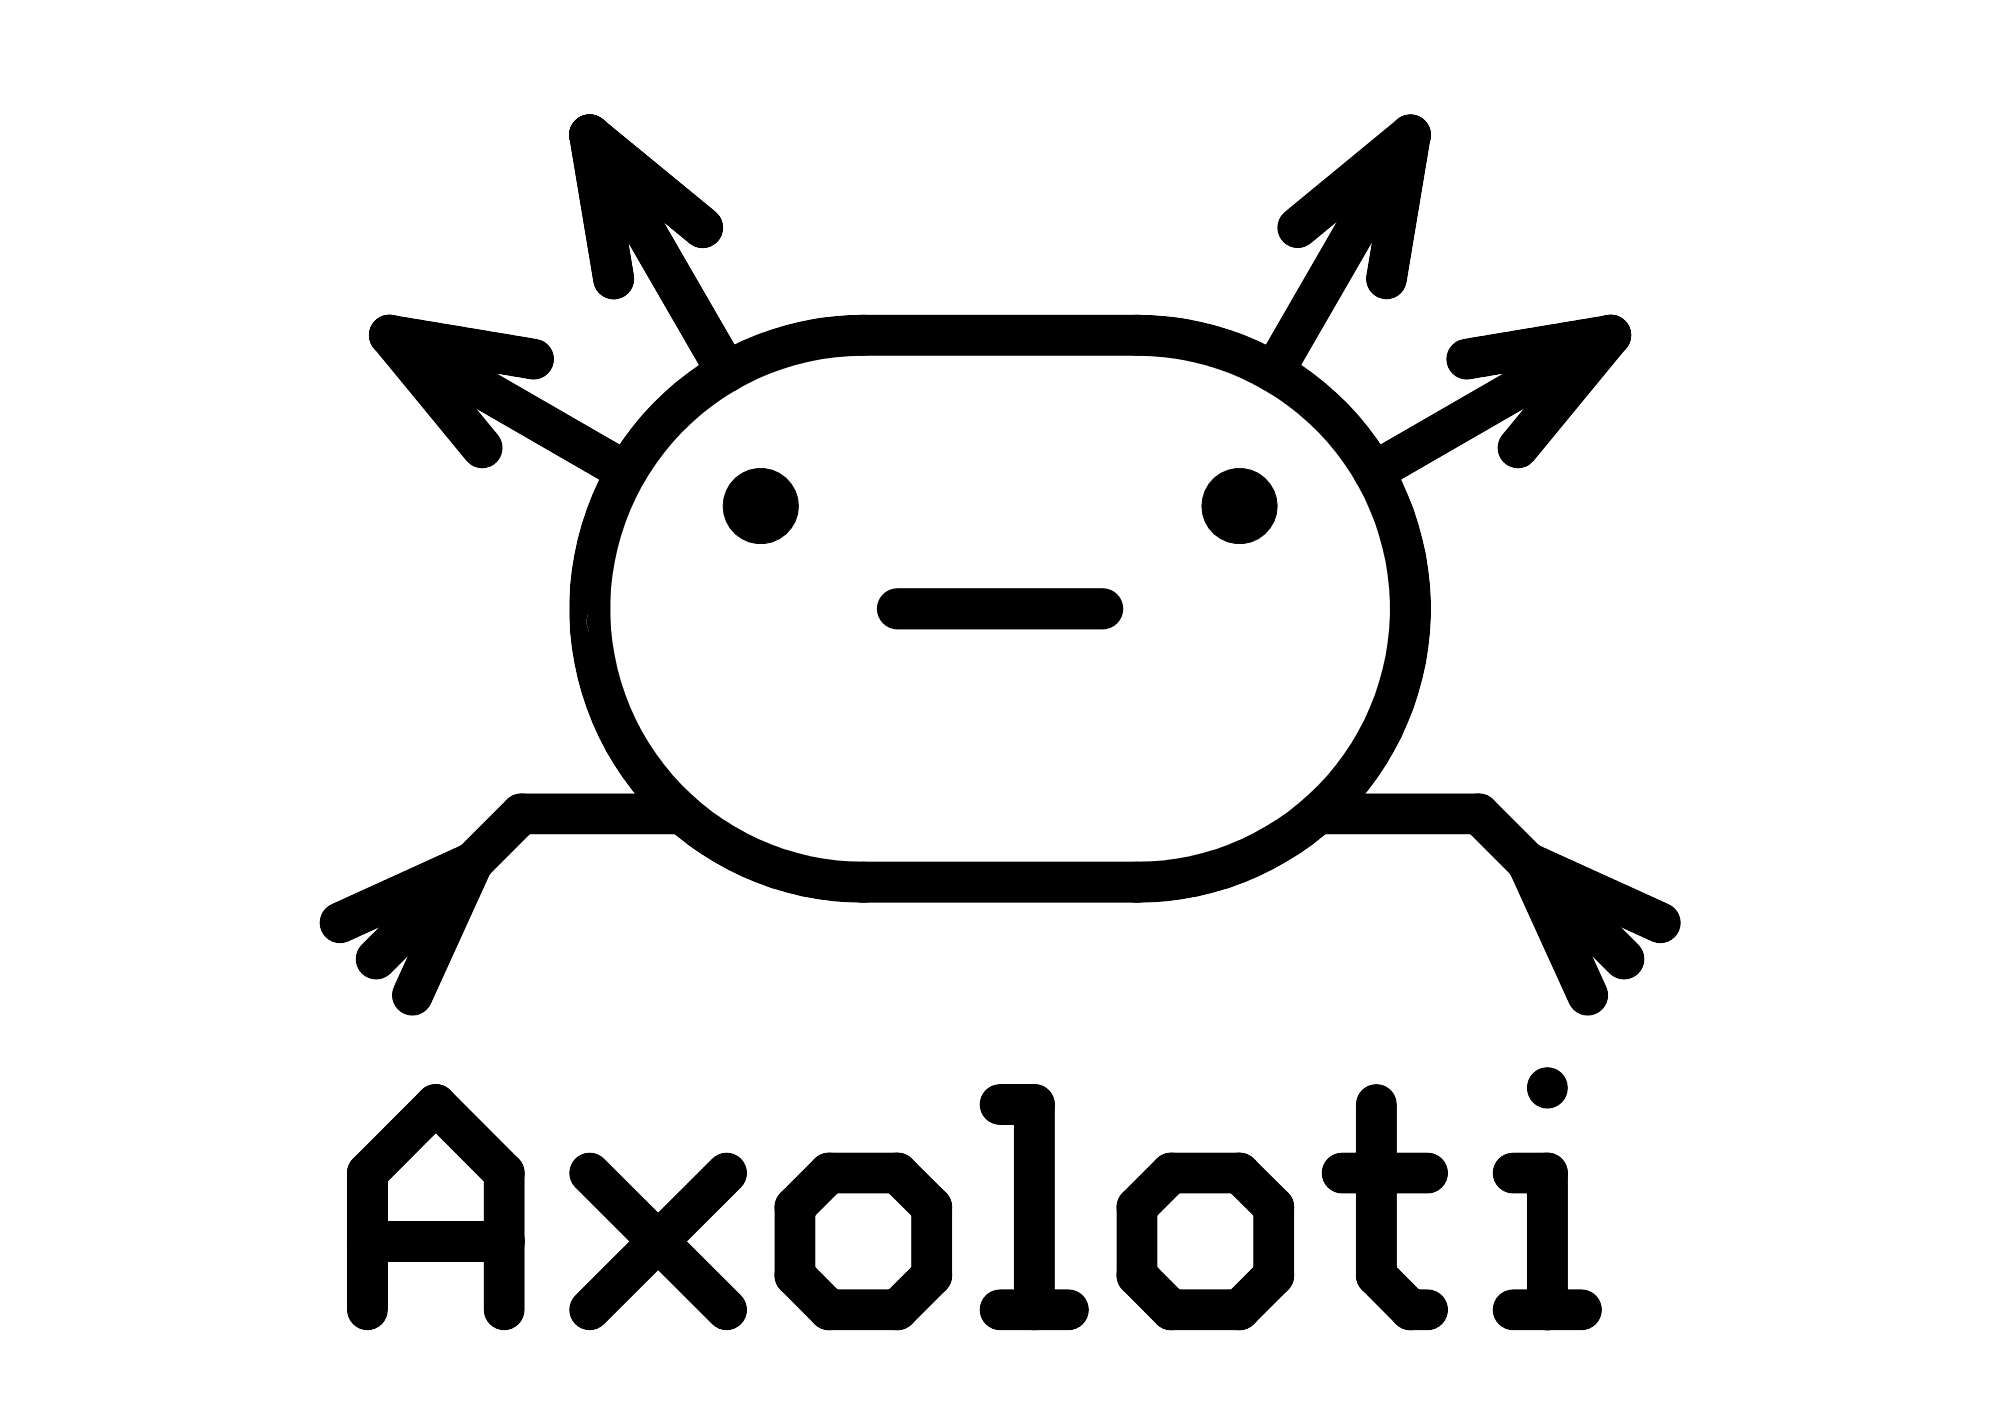 Meet Axoloti And Help Make It Accessible To More Music Makers Digital Audio Platform Image Via